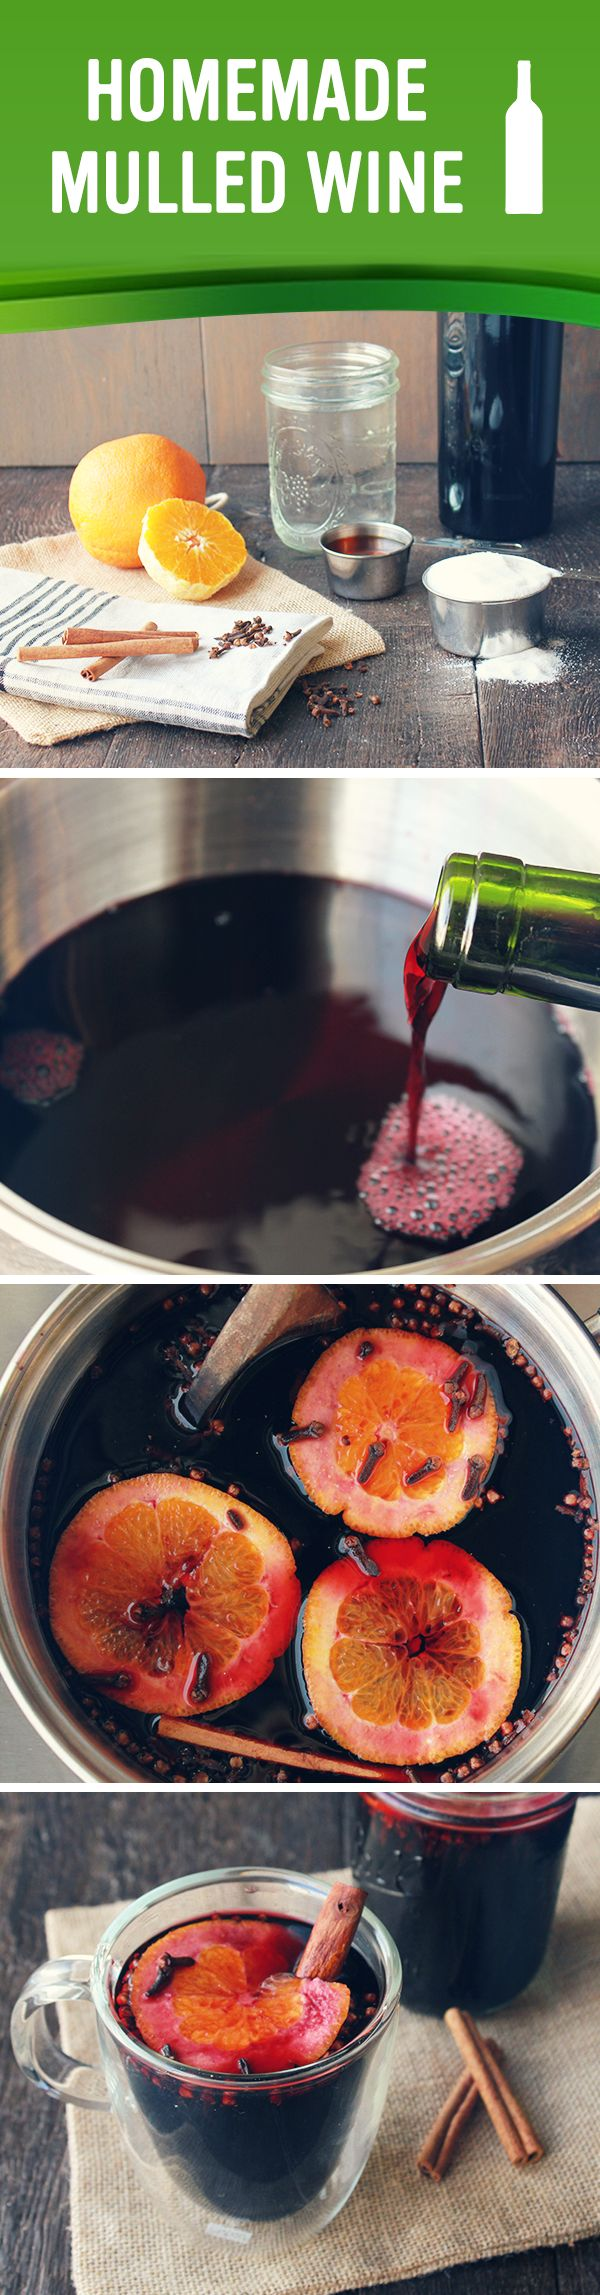 Cozy up with this warm, simple homemade mulled wine on a chilly winter night!